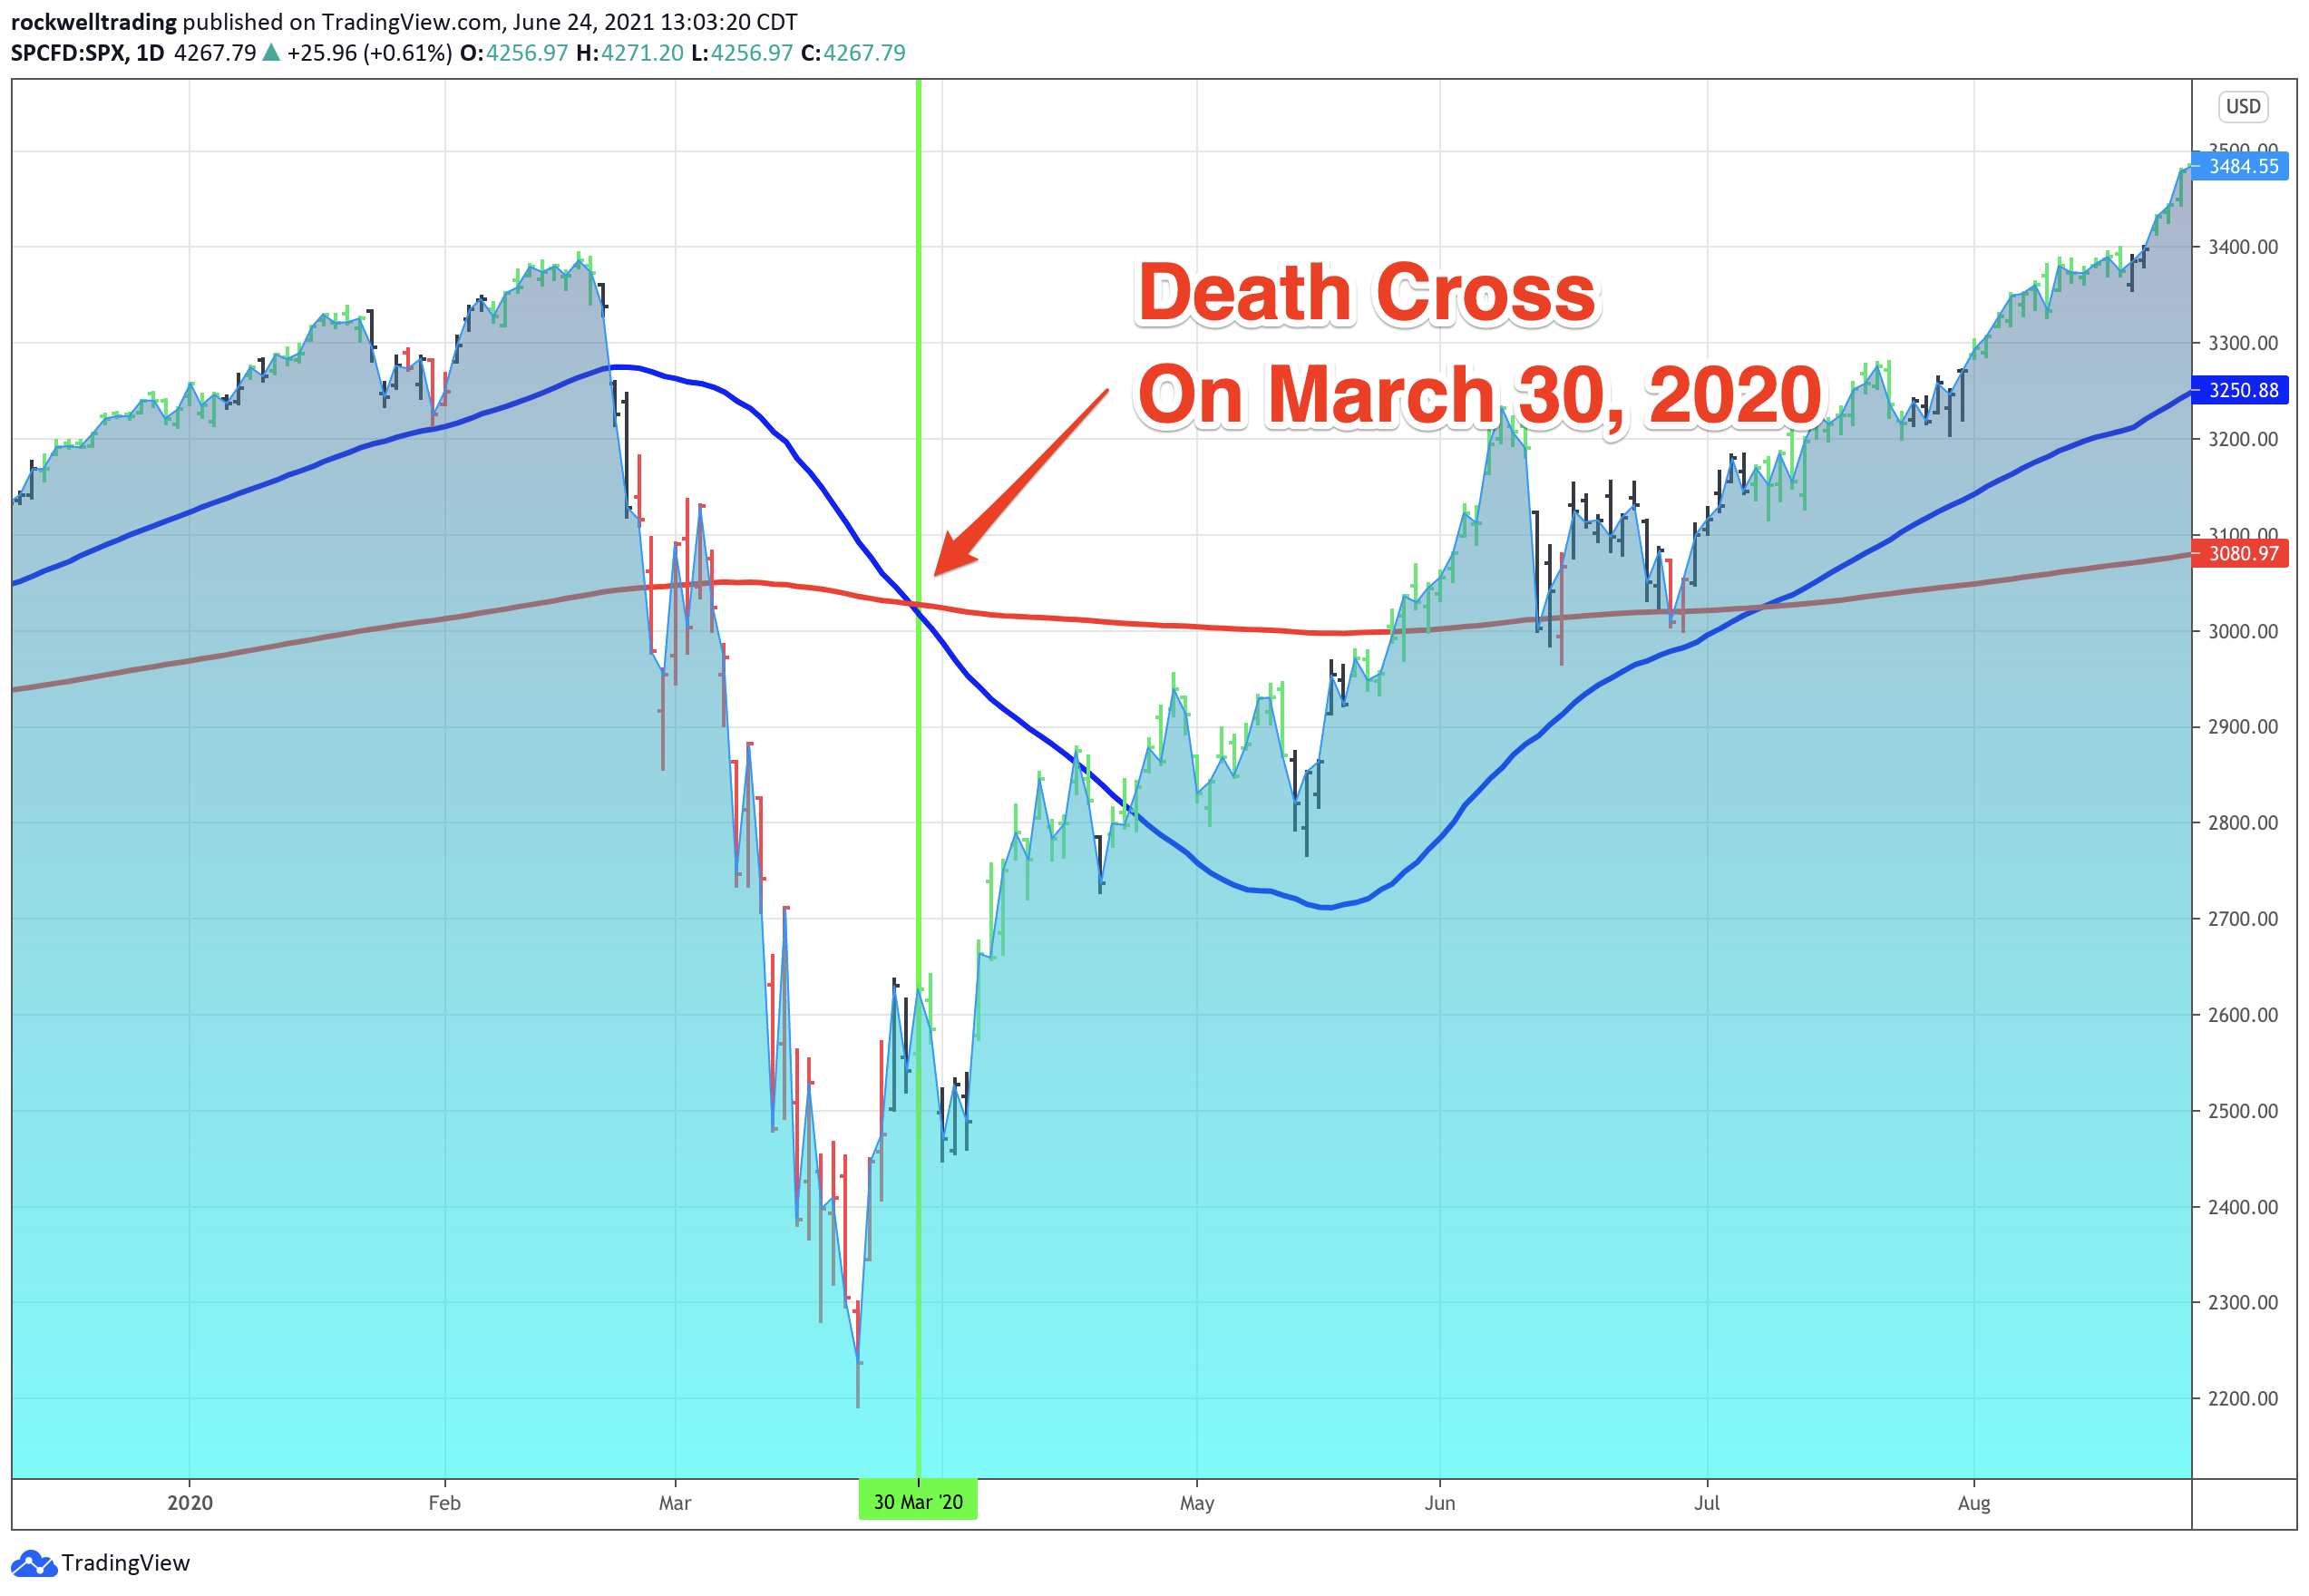 Death Cross Explained: SPX on March 30, 2020